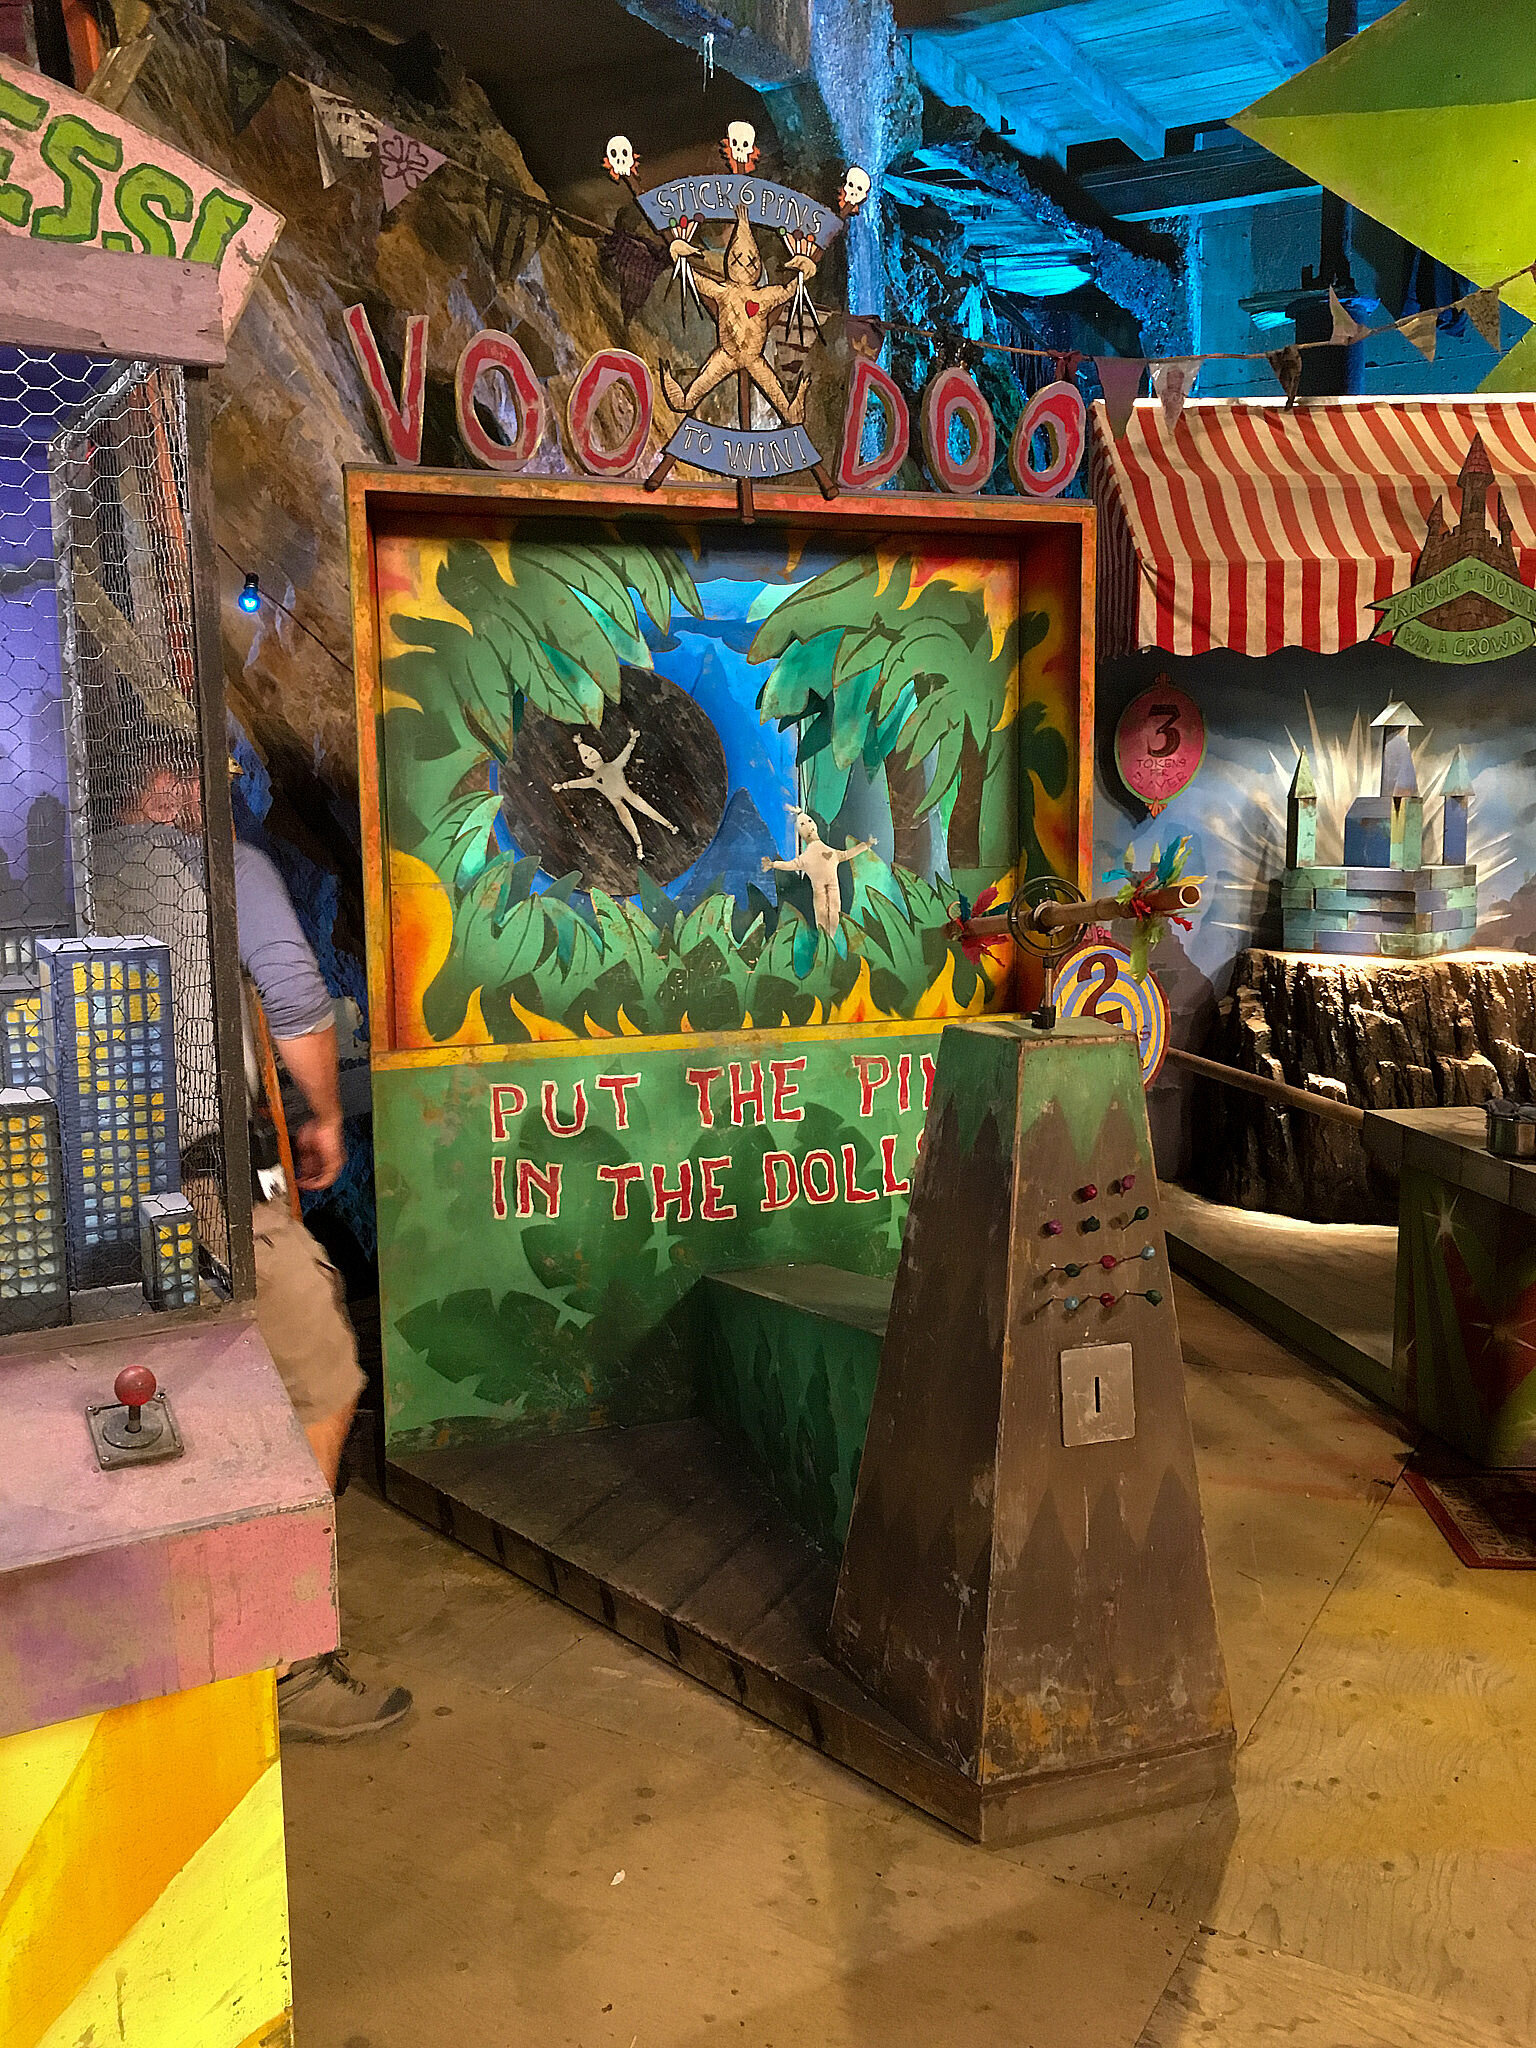 Here's the Voodoo game on set between the catapult game and Monster Madness. I think they invoke a semi-familiar but also bizarre sensibility.